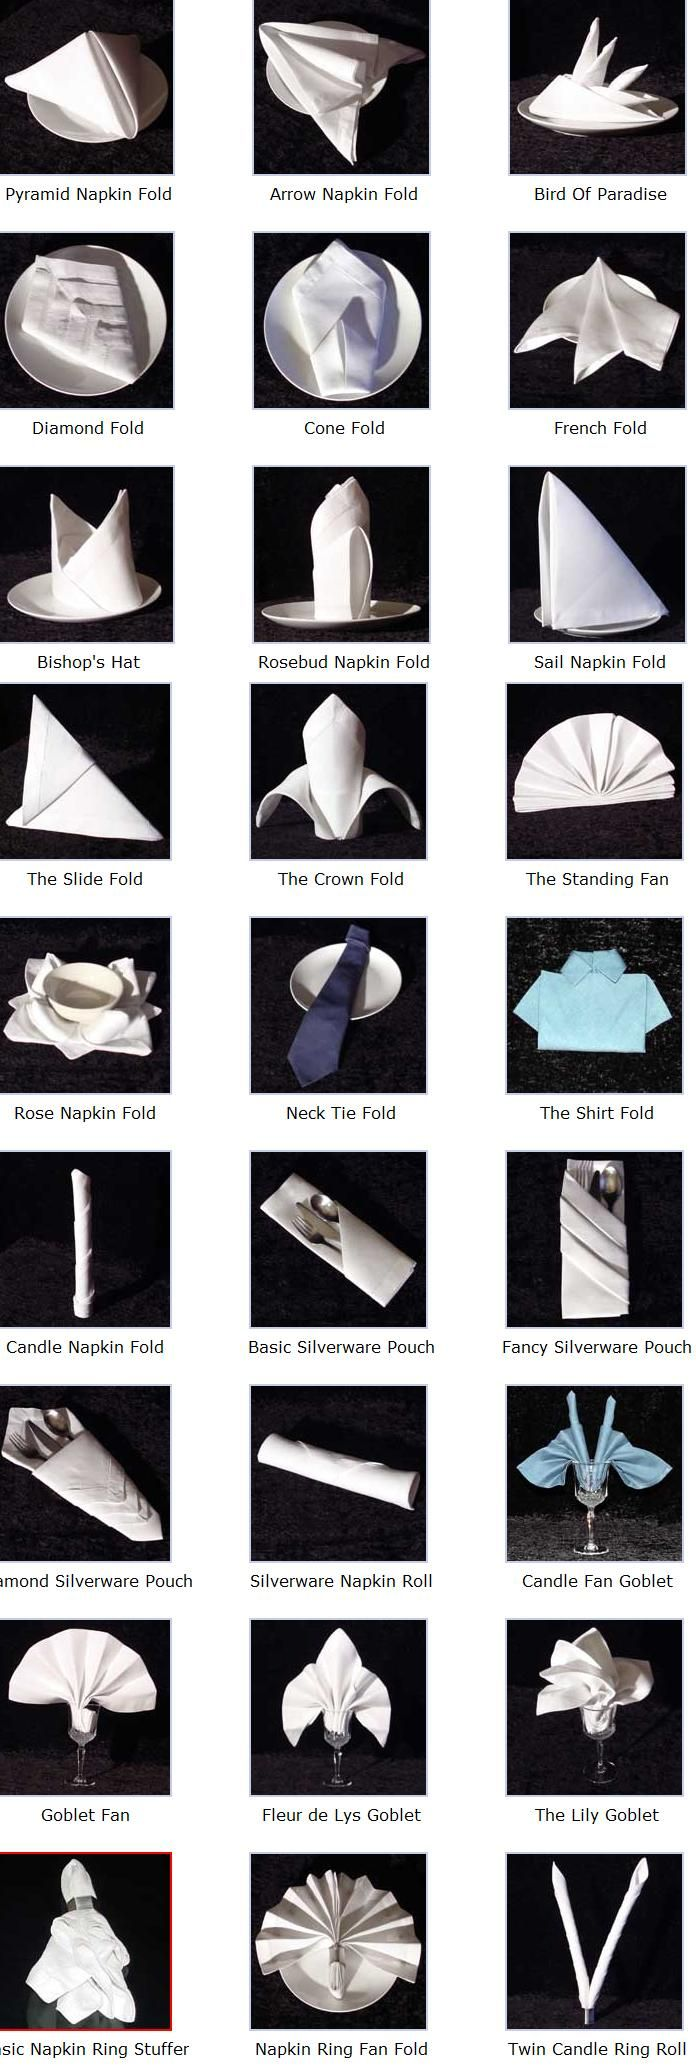 Different ways of folding napkins